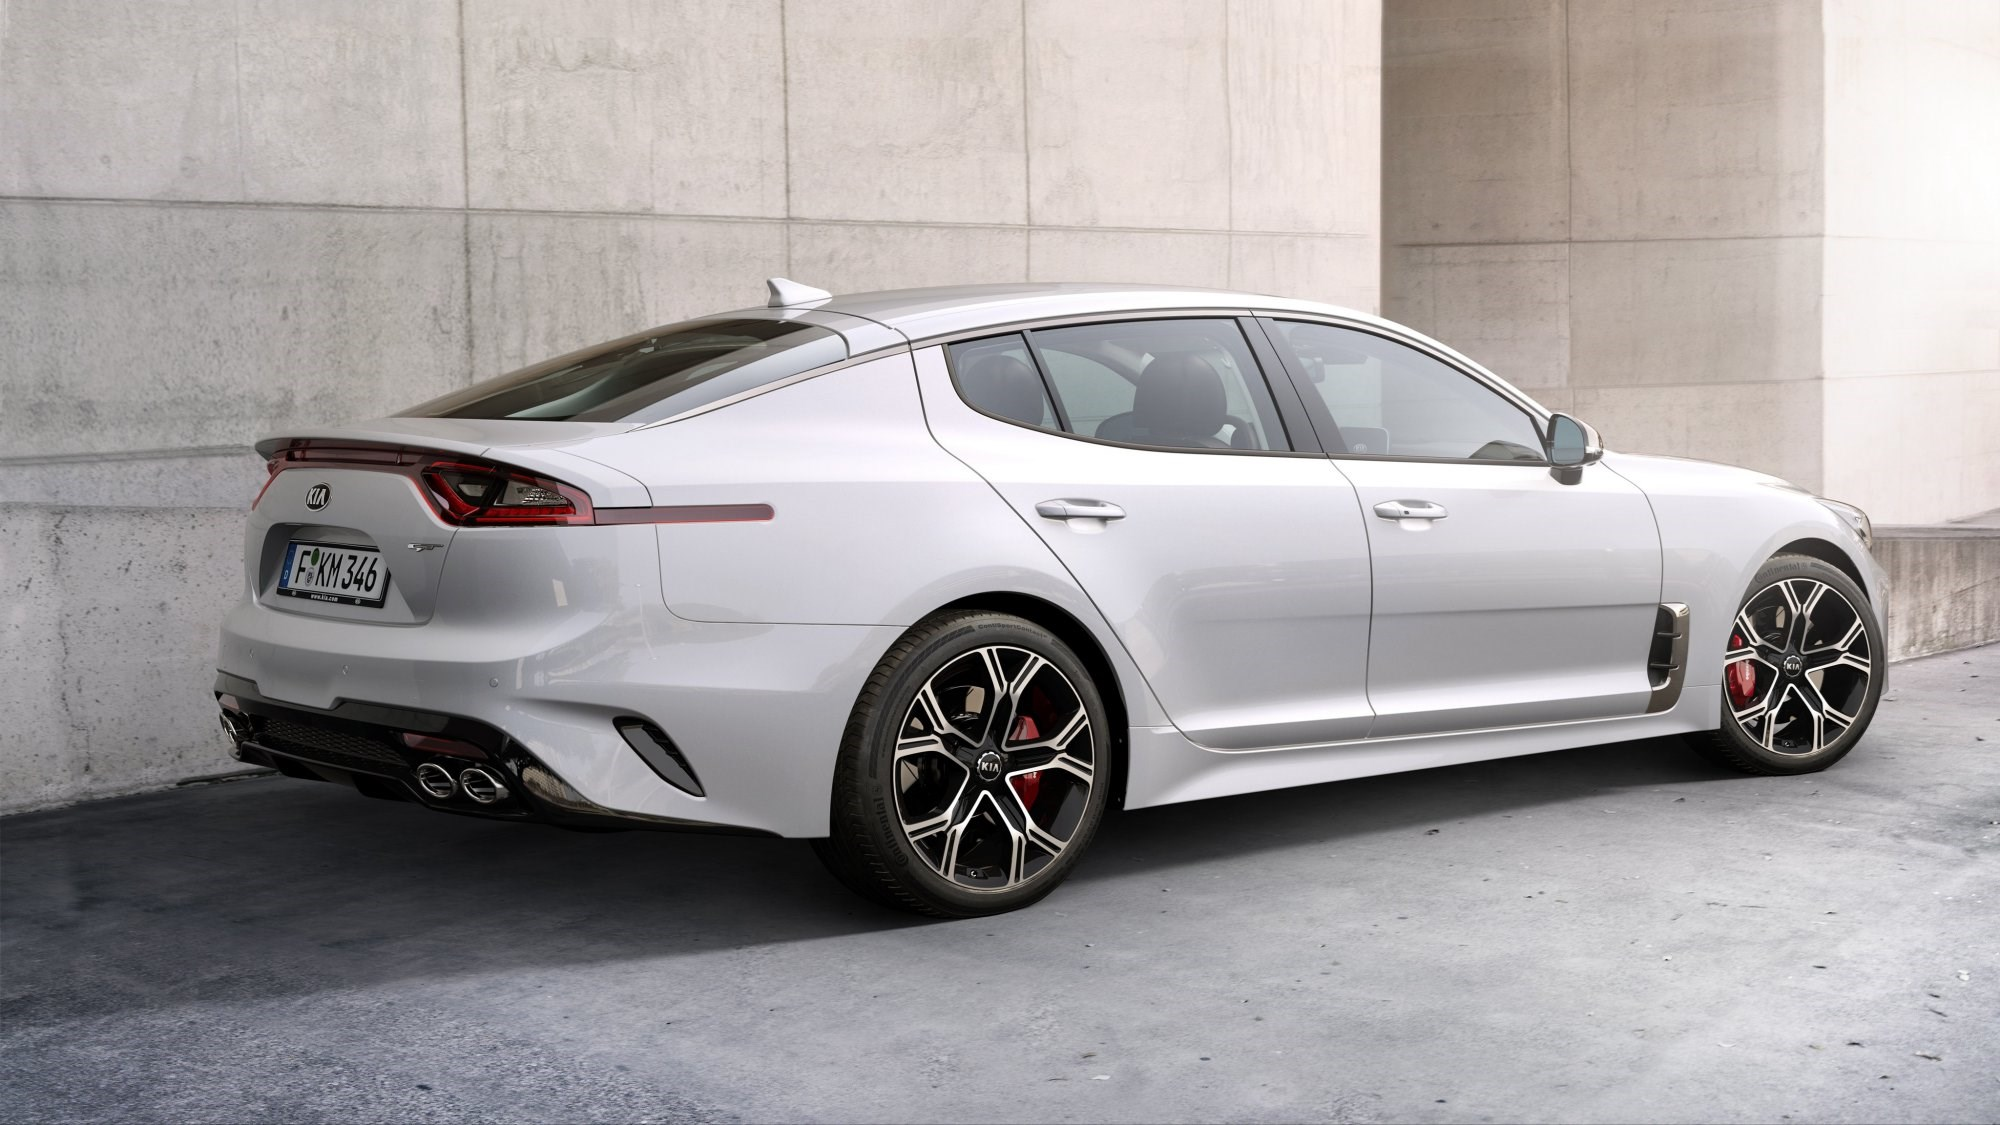 2018 Kia Stinger V6 Priced From $48,990 Thumbnail